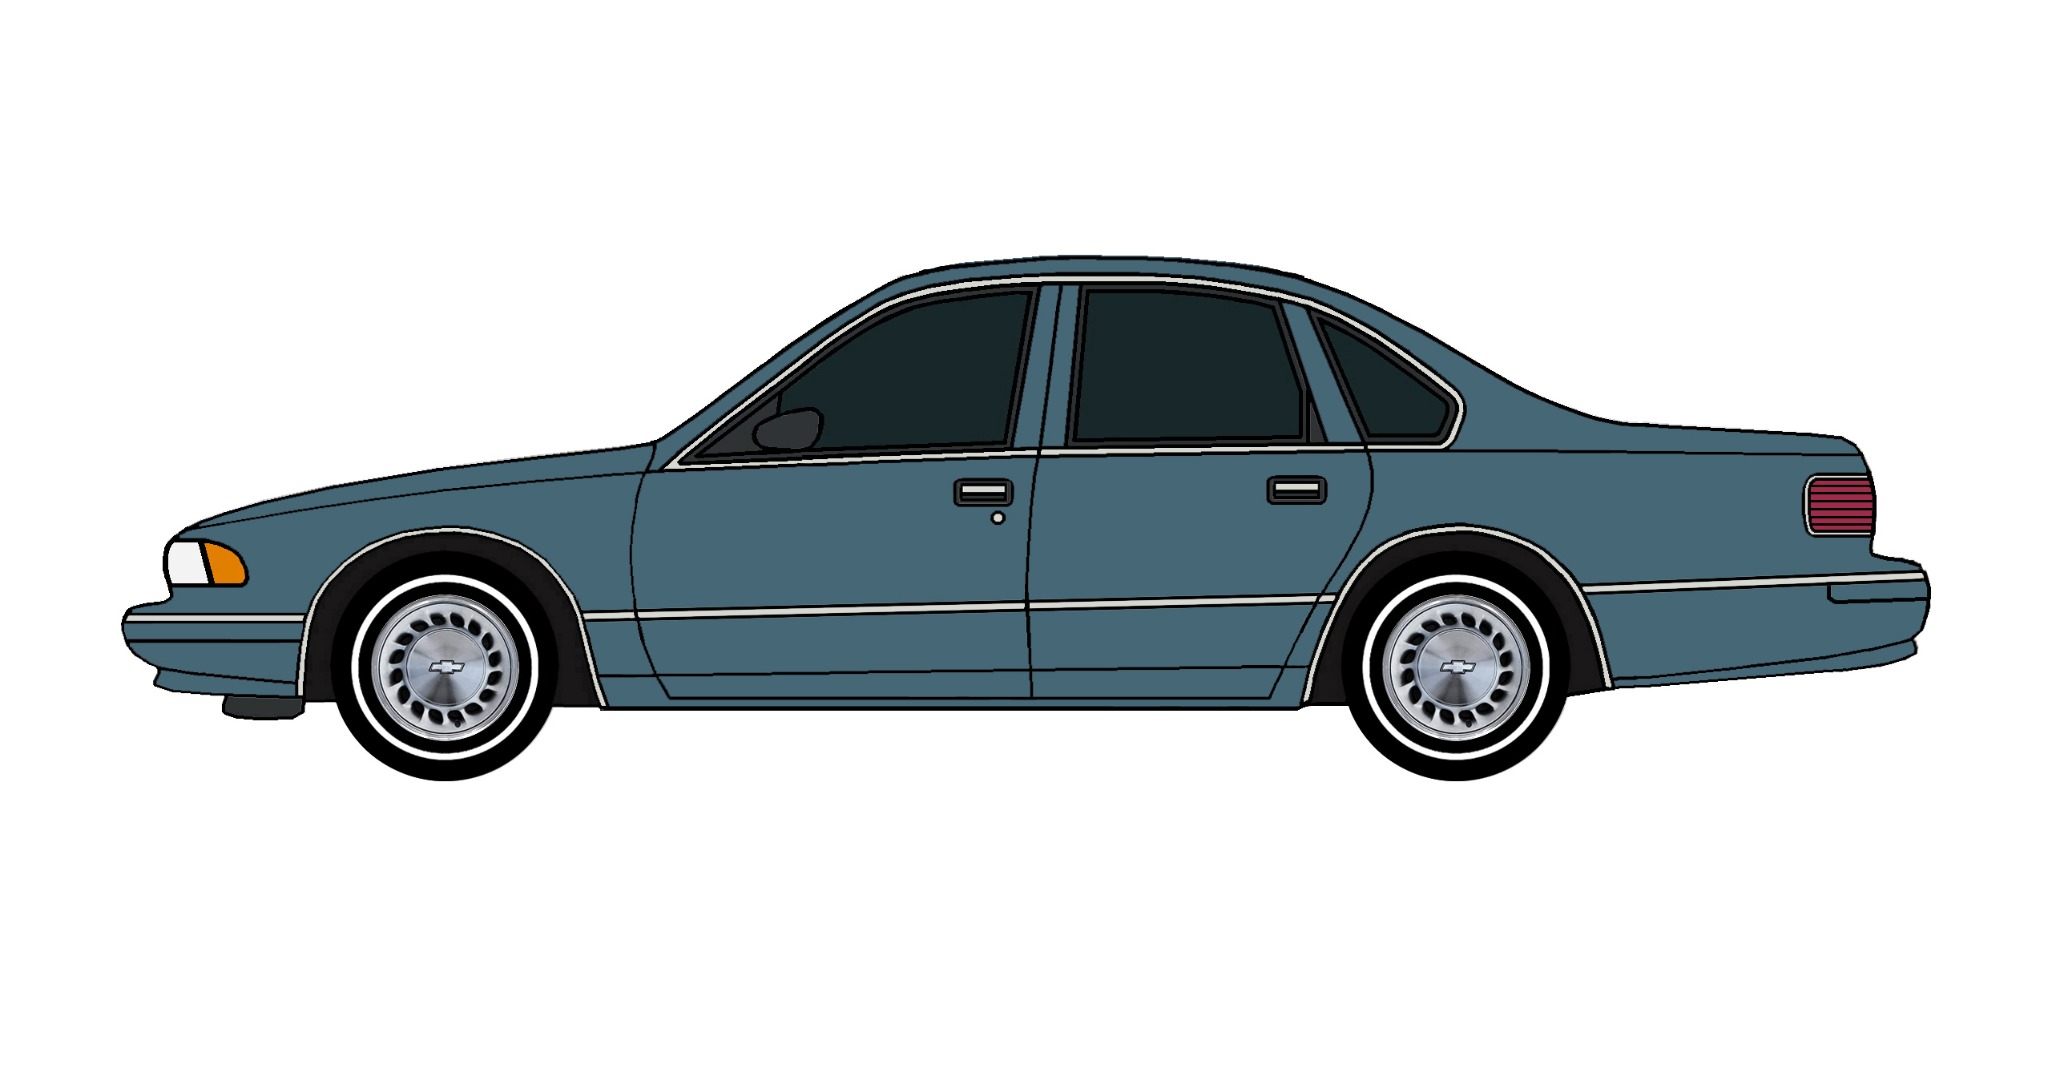 1996 Chevy Caprice BRITTANY BLUE